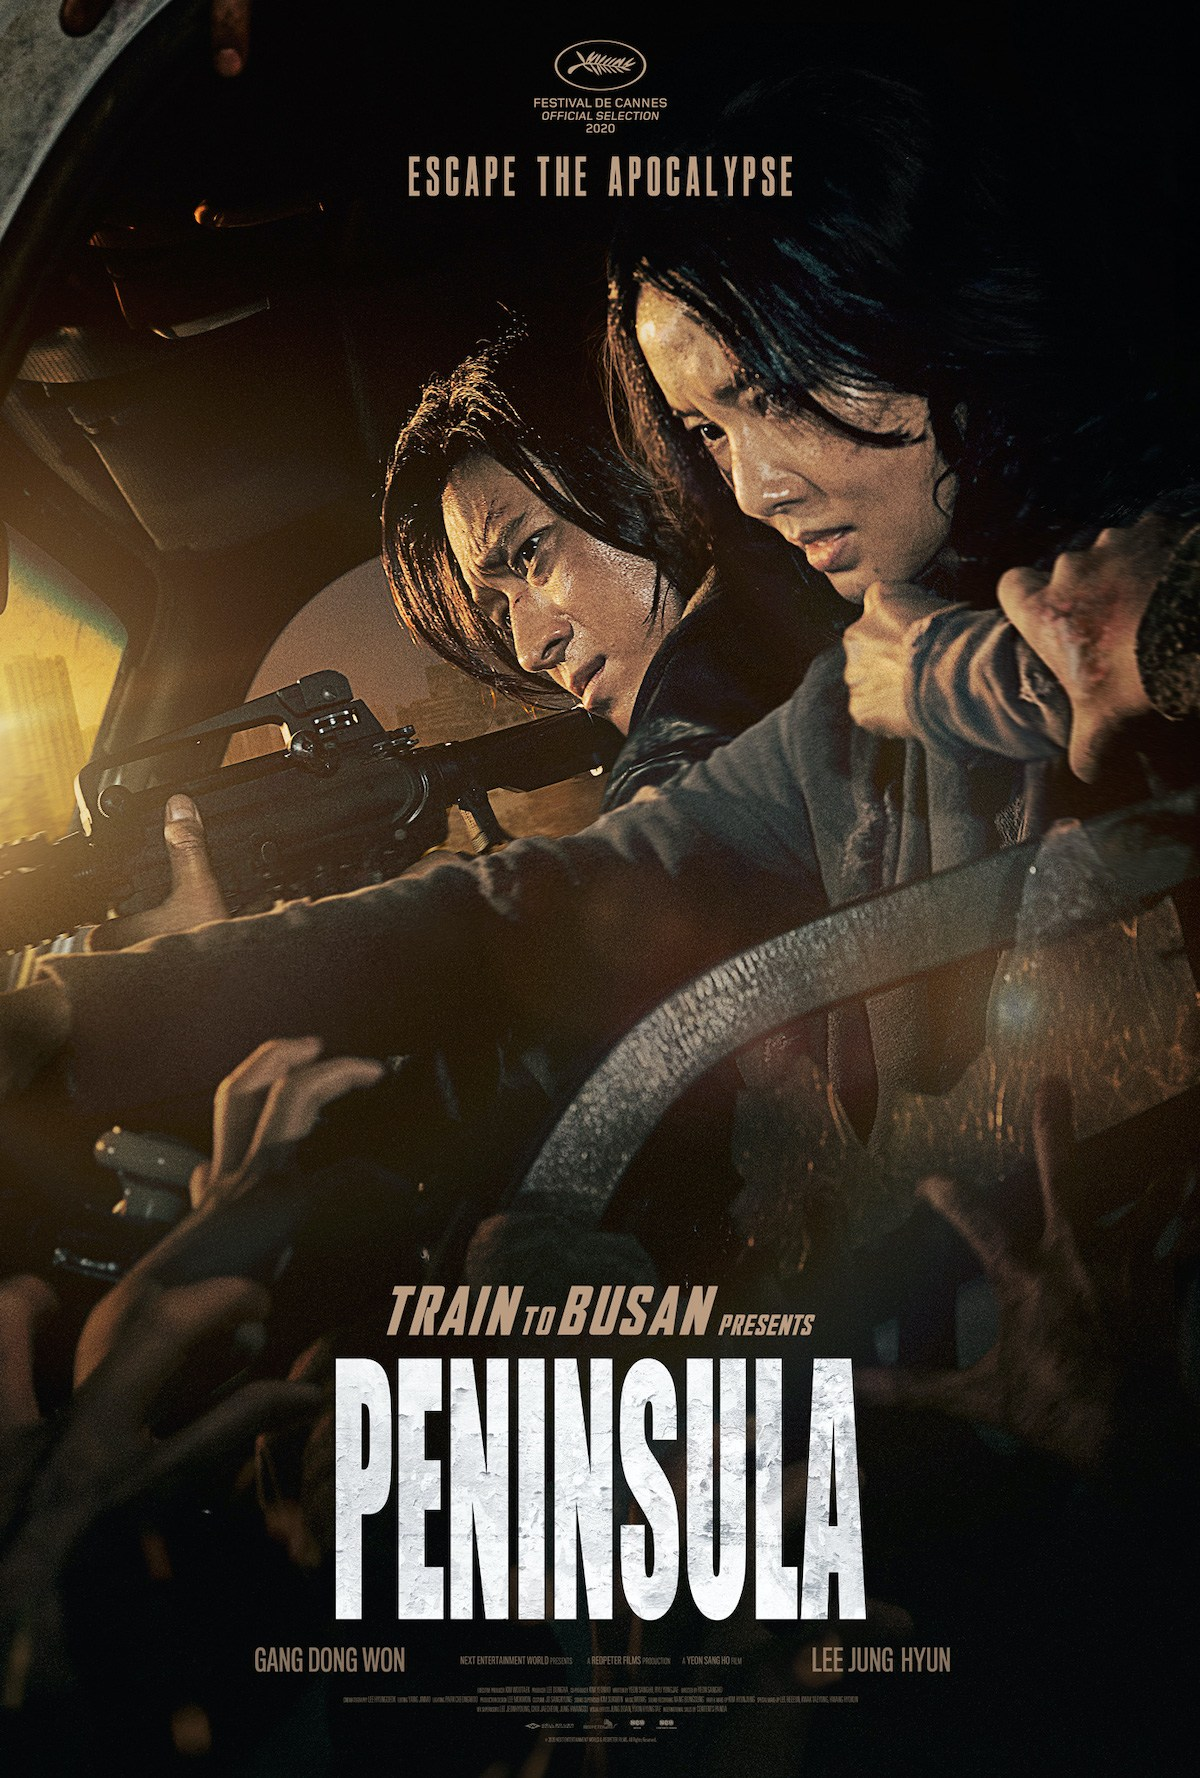 Train to Busan Presents Peninsula Poster 2